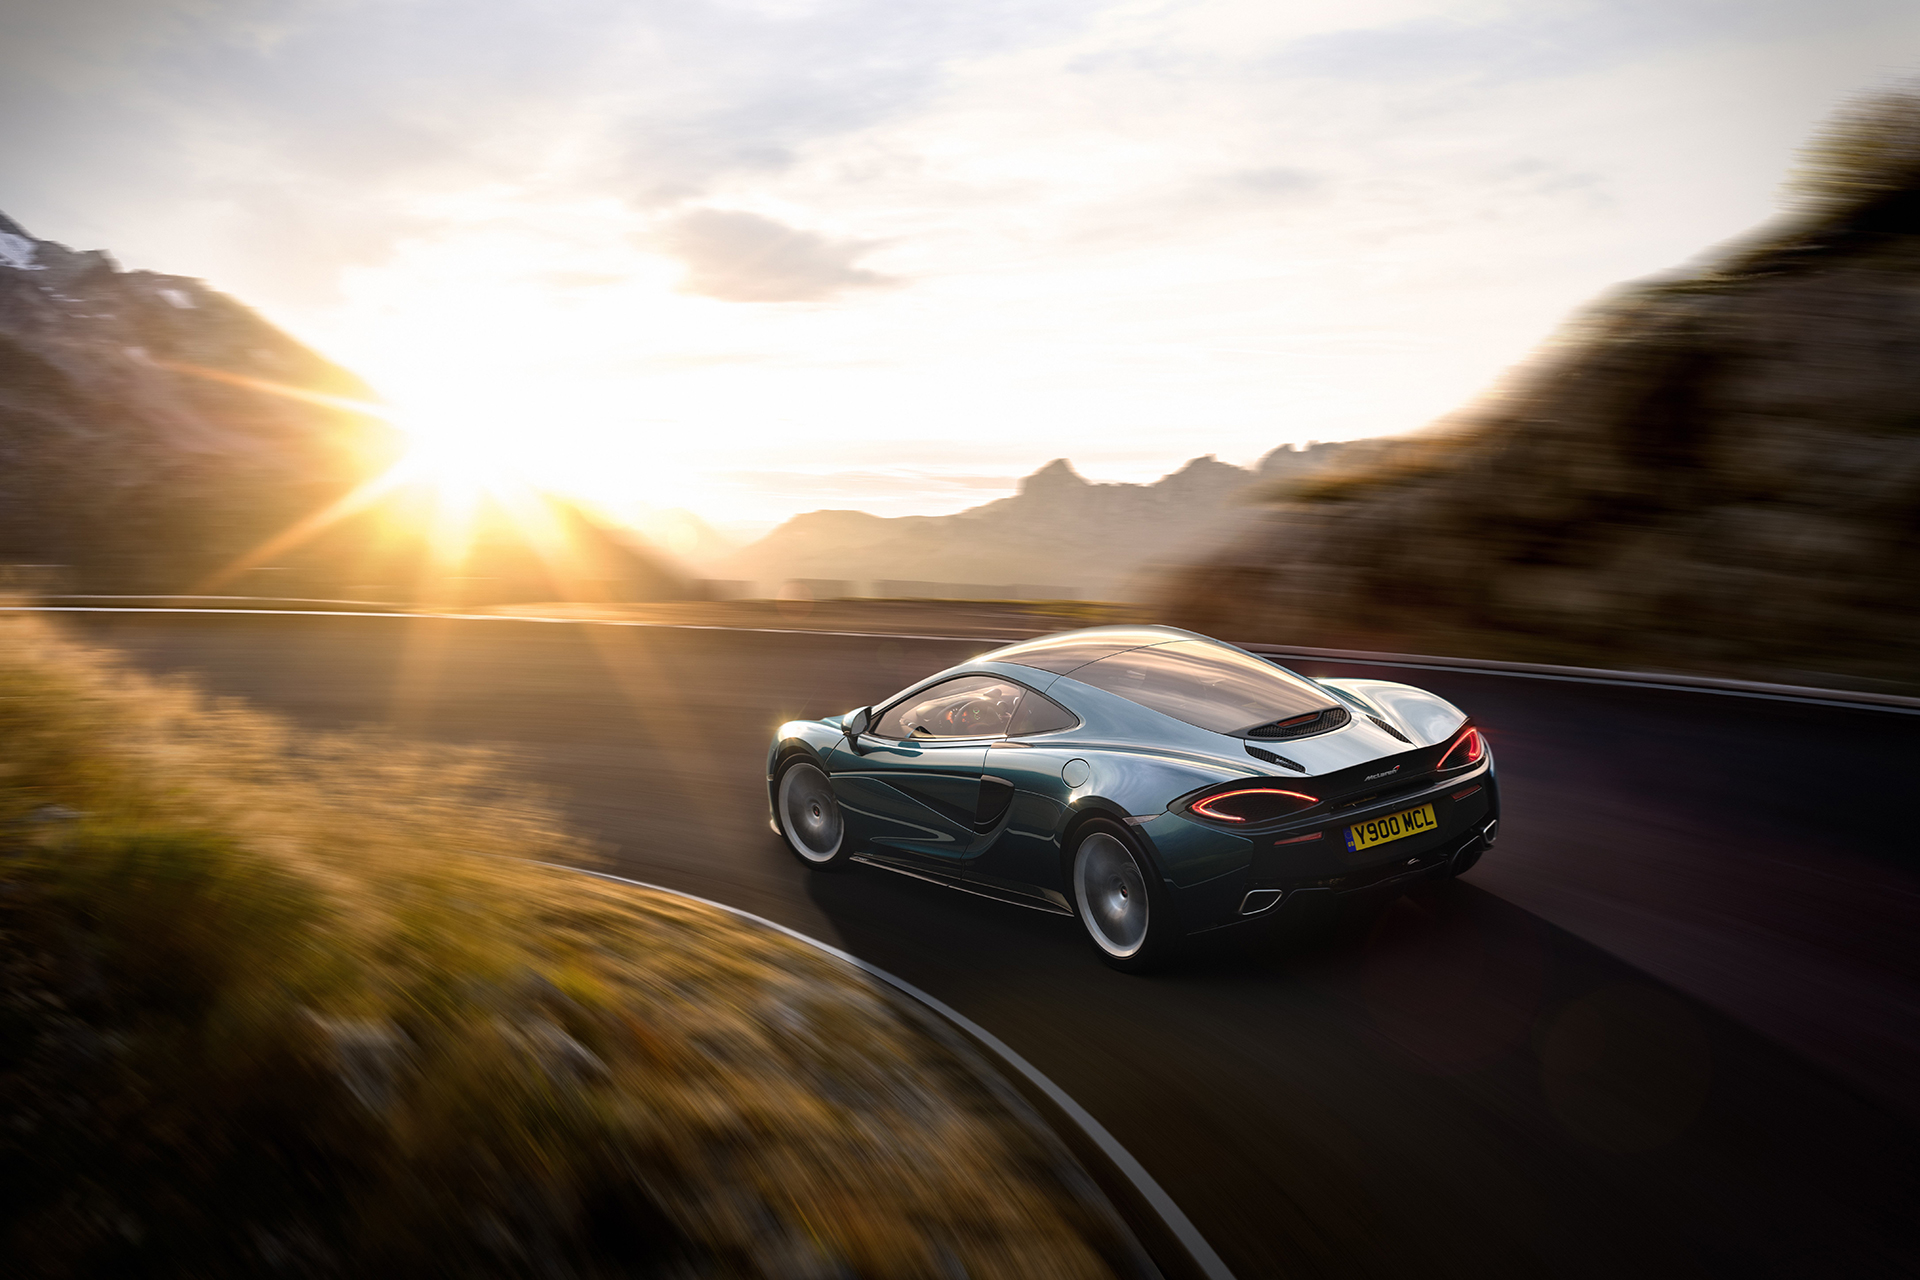 McLaren 570GT - 2016 - sur route / on road - photo